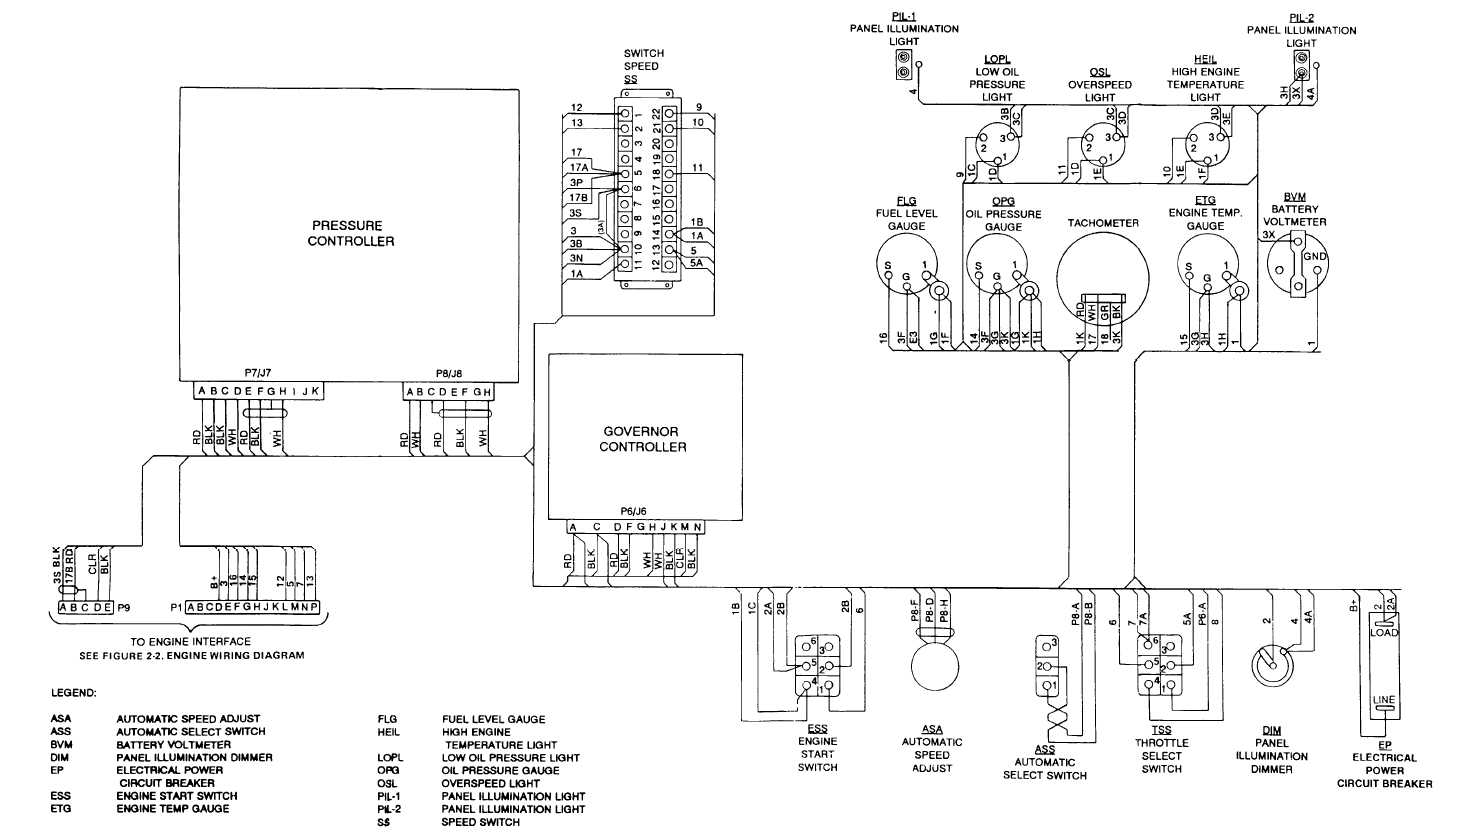 electrical control wiring diagram | wiring diagram vcb panel wiring diagram 4001e control panel wiring diagram